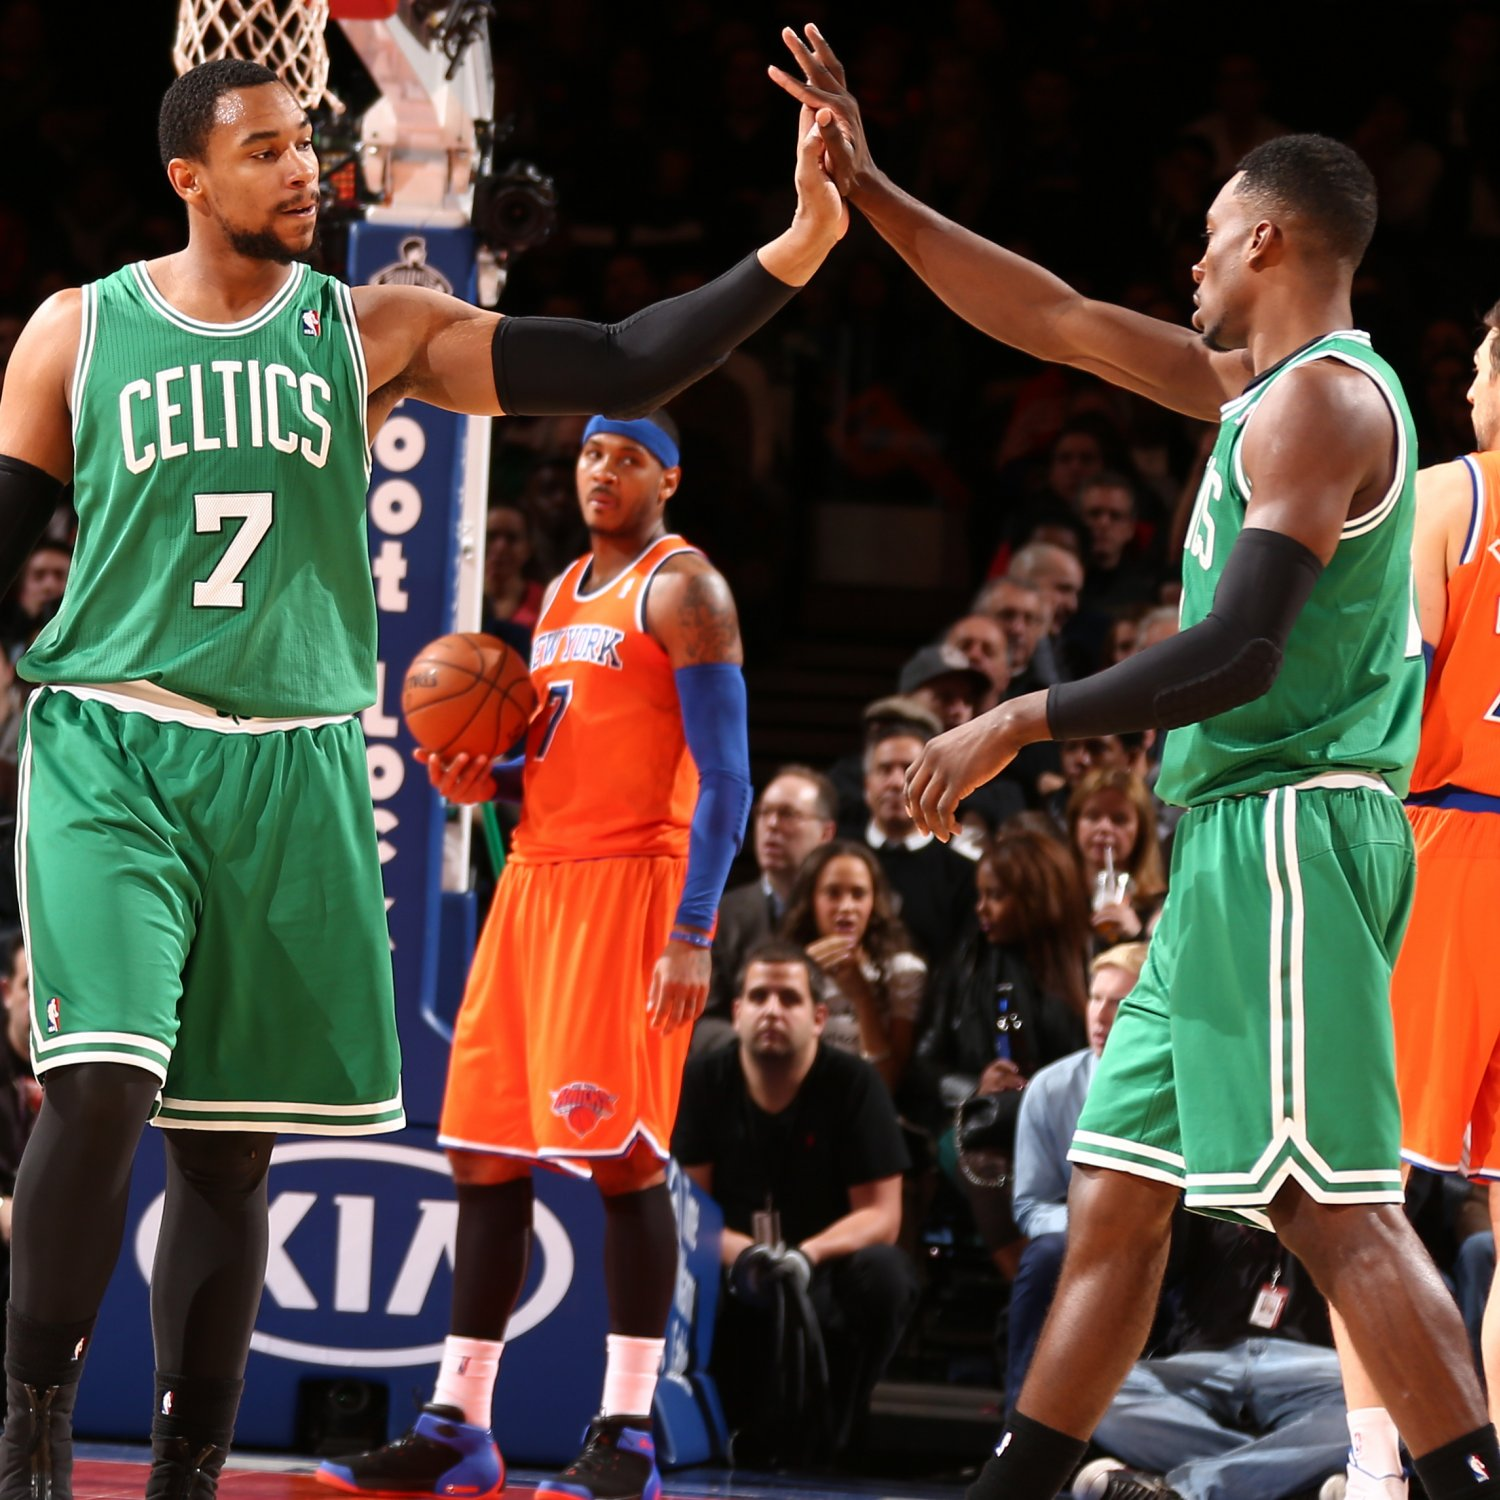 Nfl1000 Rookie Review From Week 9: Handicapping Boston Celtics Players' Odds Of Making 2013